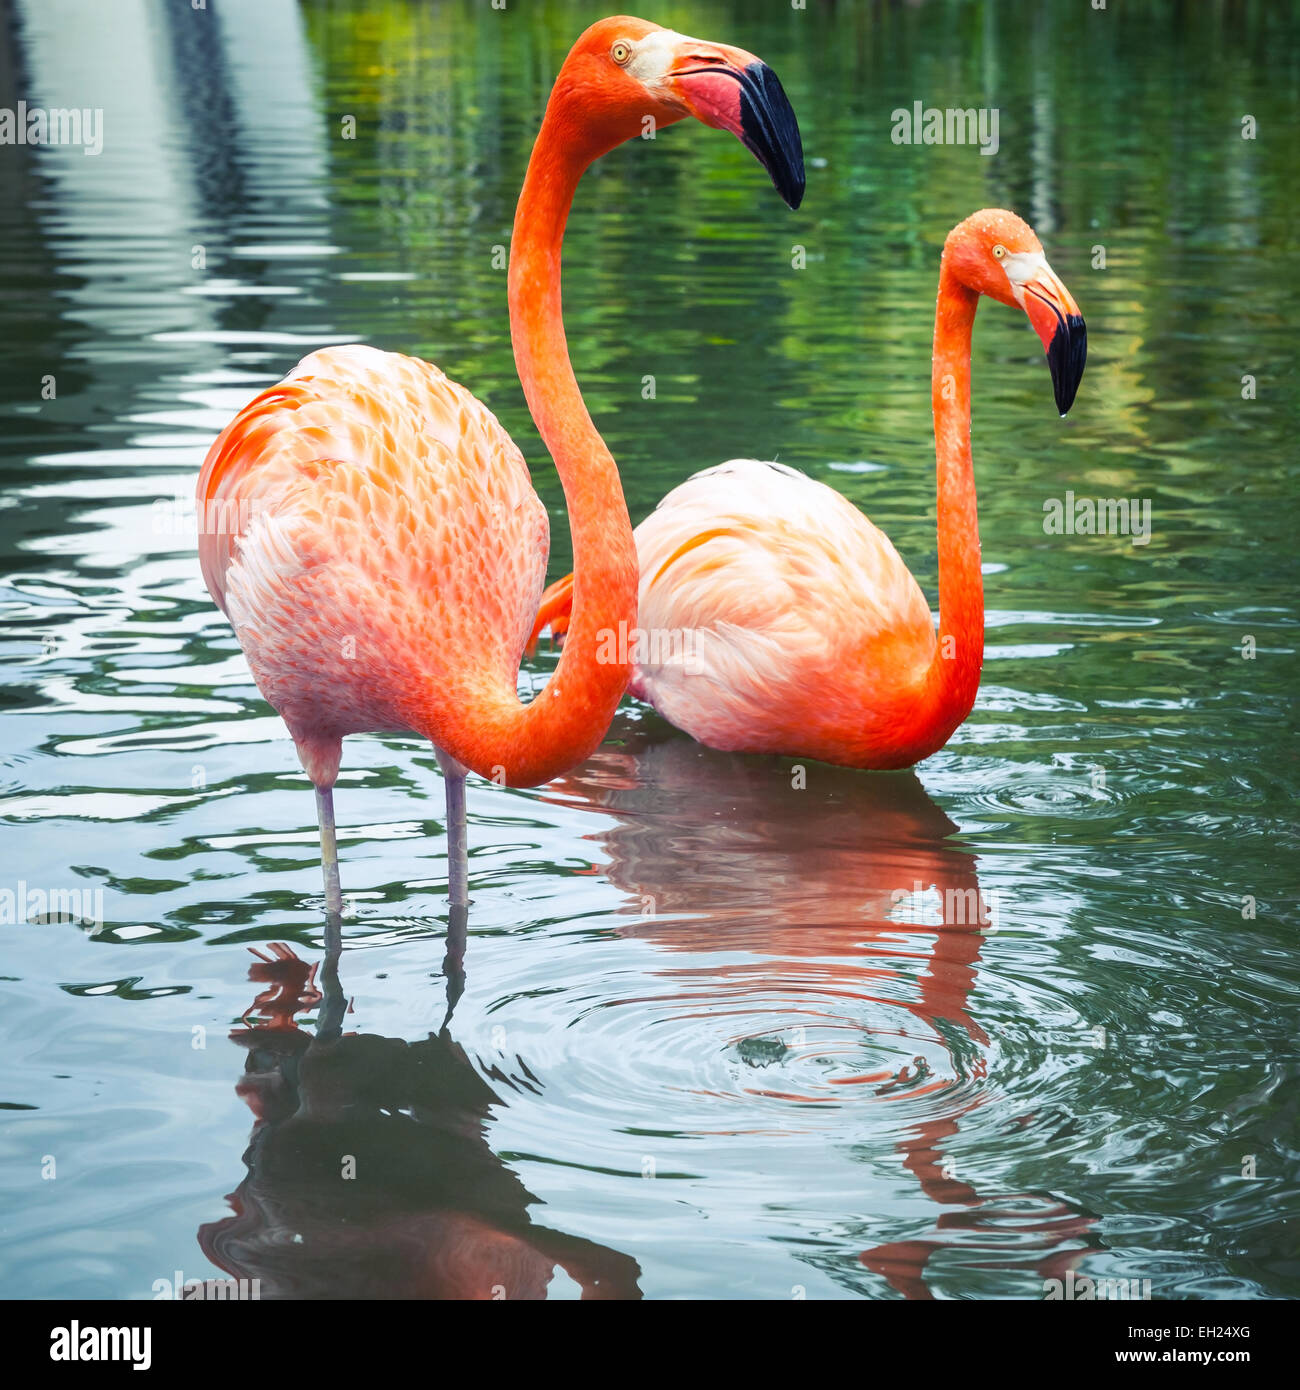 Two pink flamingos walking in the water with reflections - Stock Image